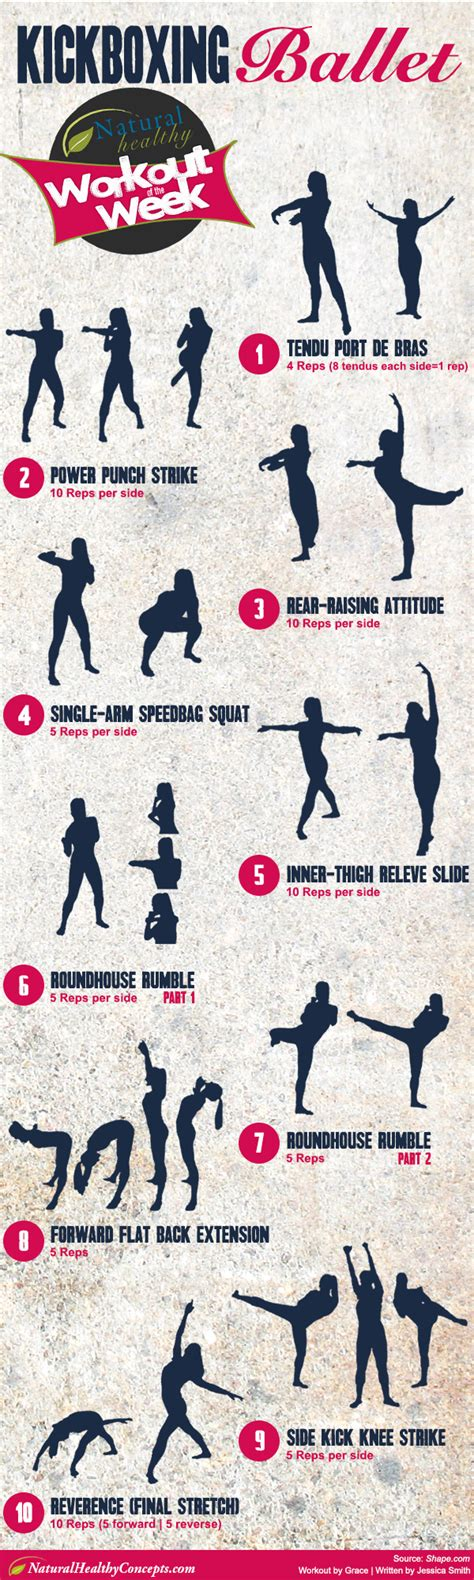 kickboxing workouts for beginners most popular workout